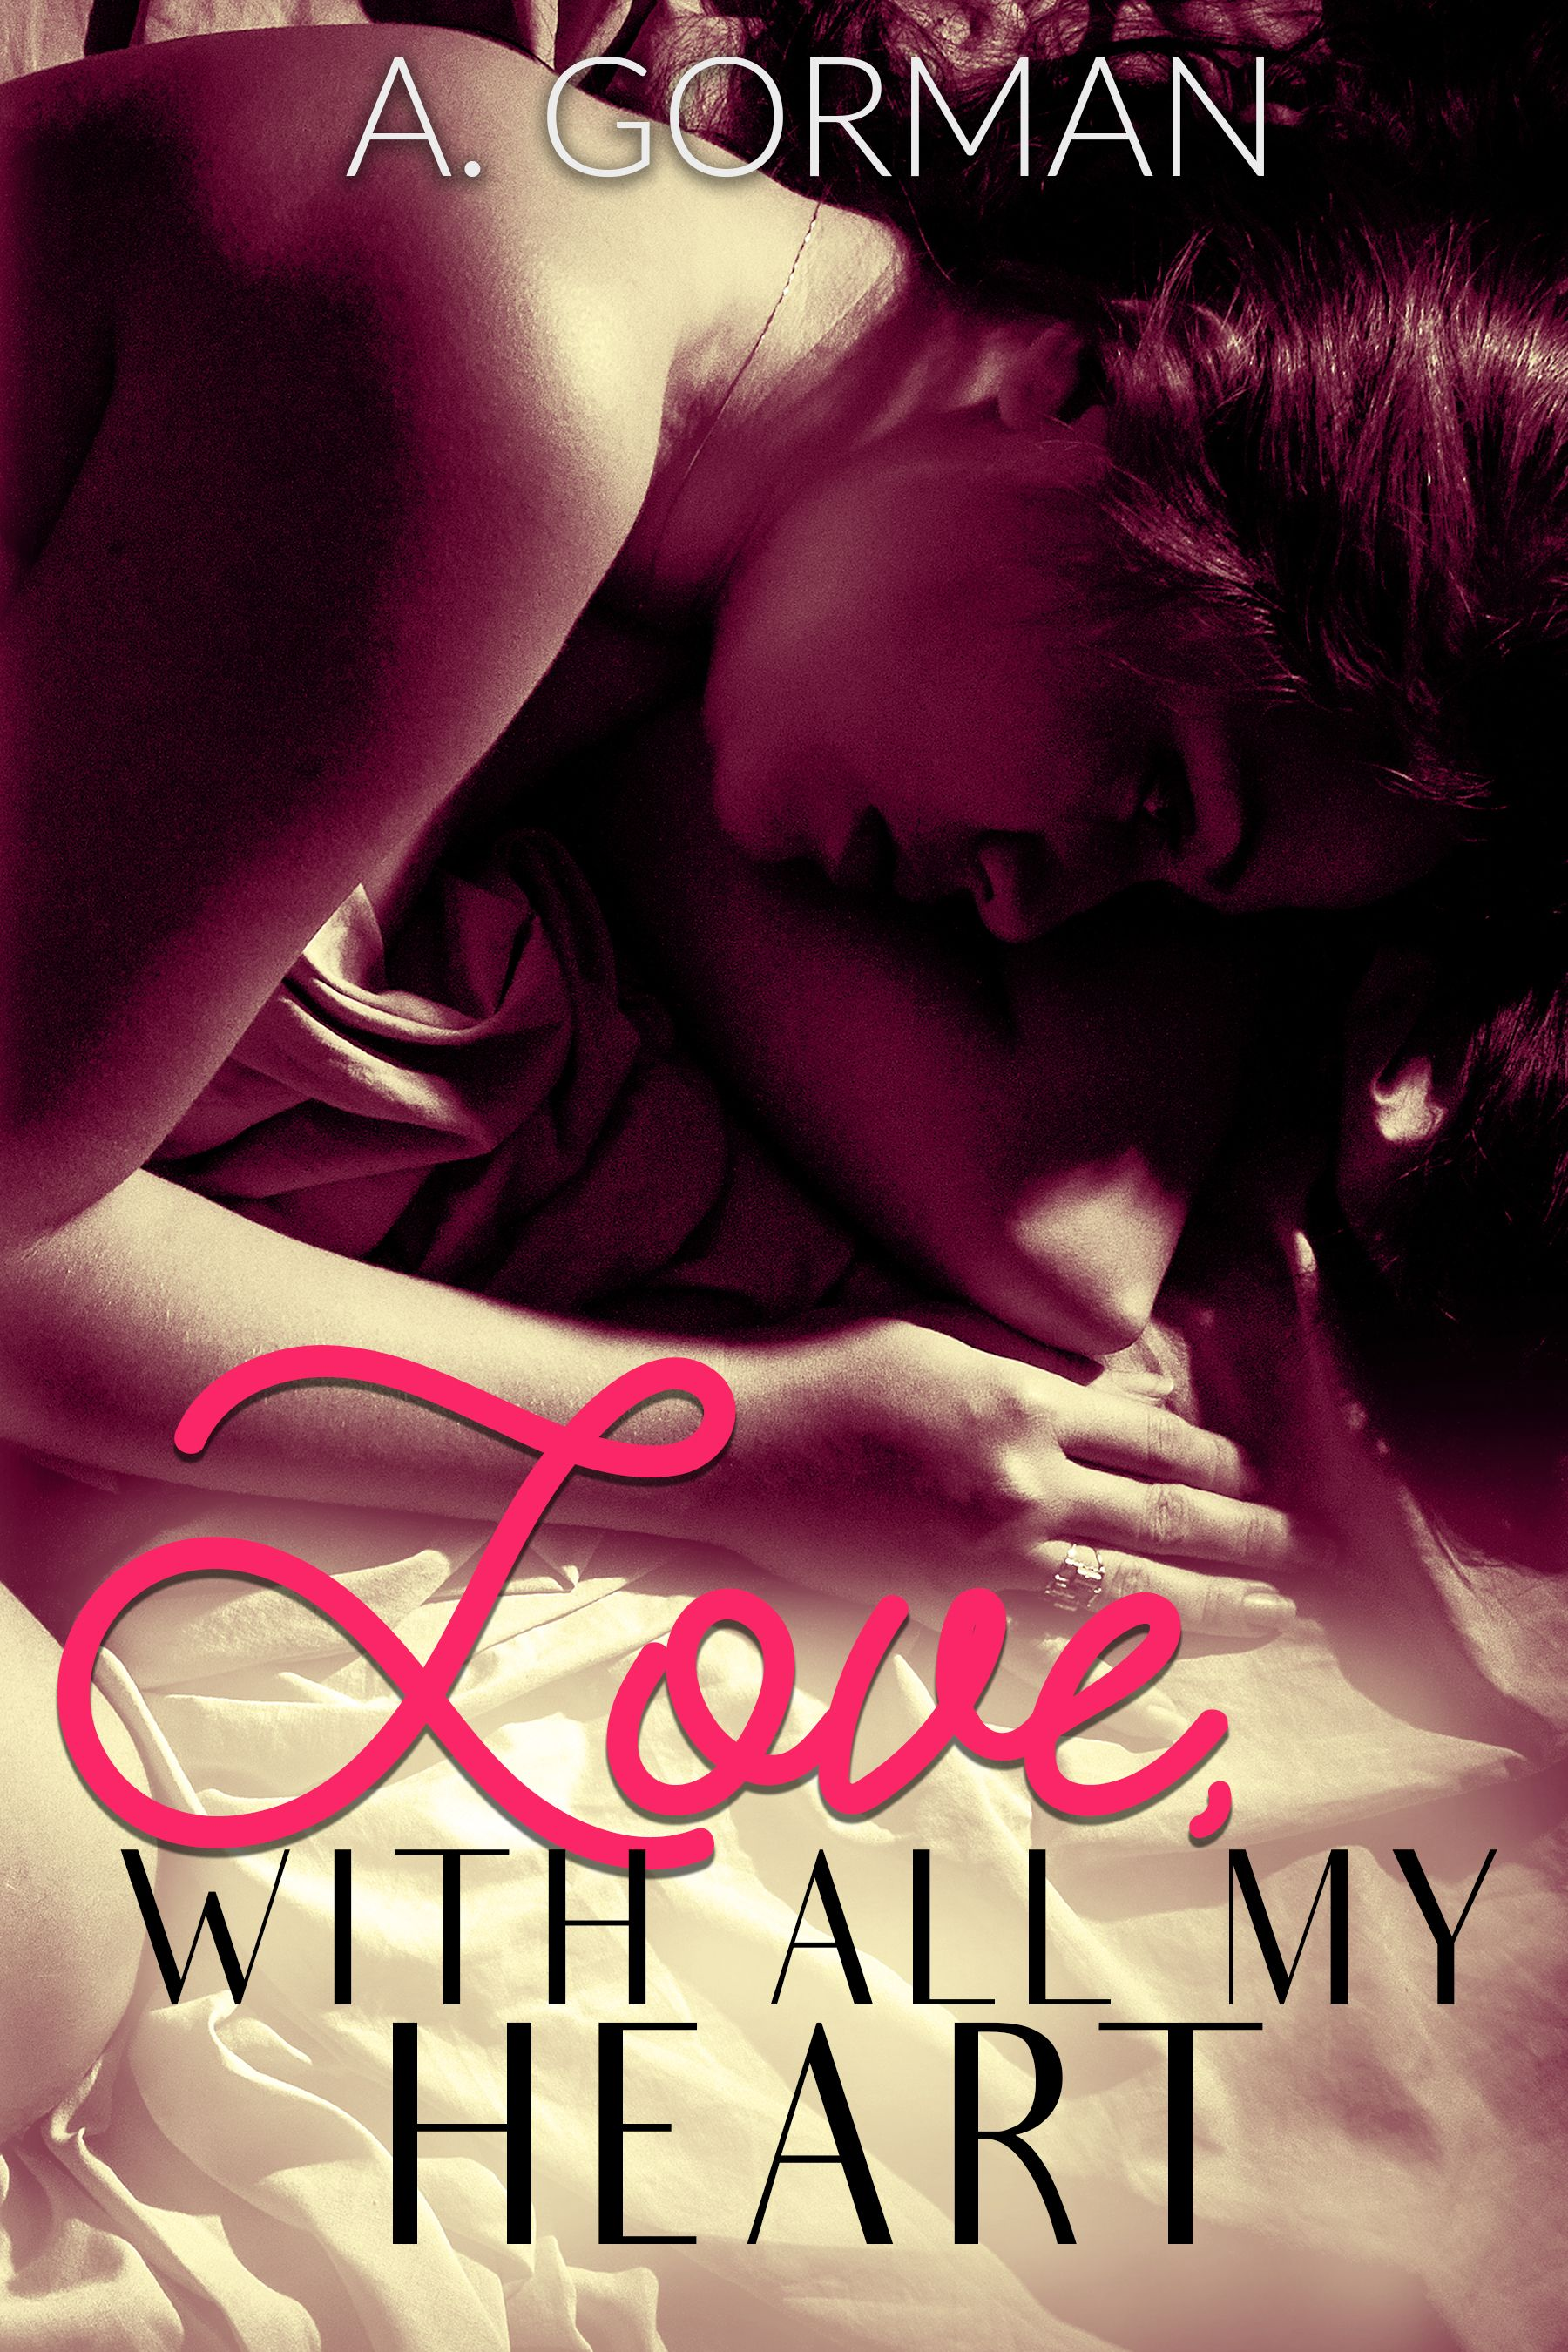 Love with all my heart by a gorman emotional romantic suspense love with all my heart by a gorman emotional romantic suspense free httpebooksodaebook dealslove with all my heart by a gorman fandeluxe Gallery